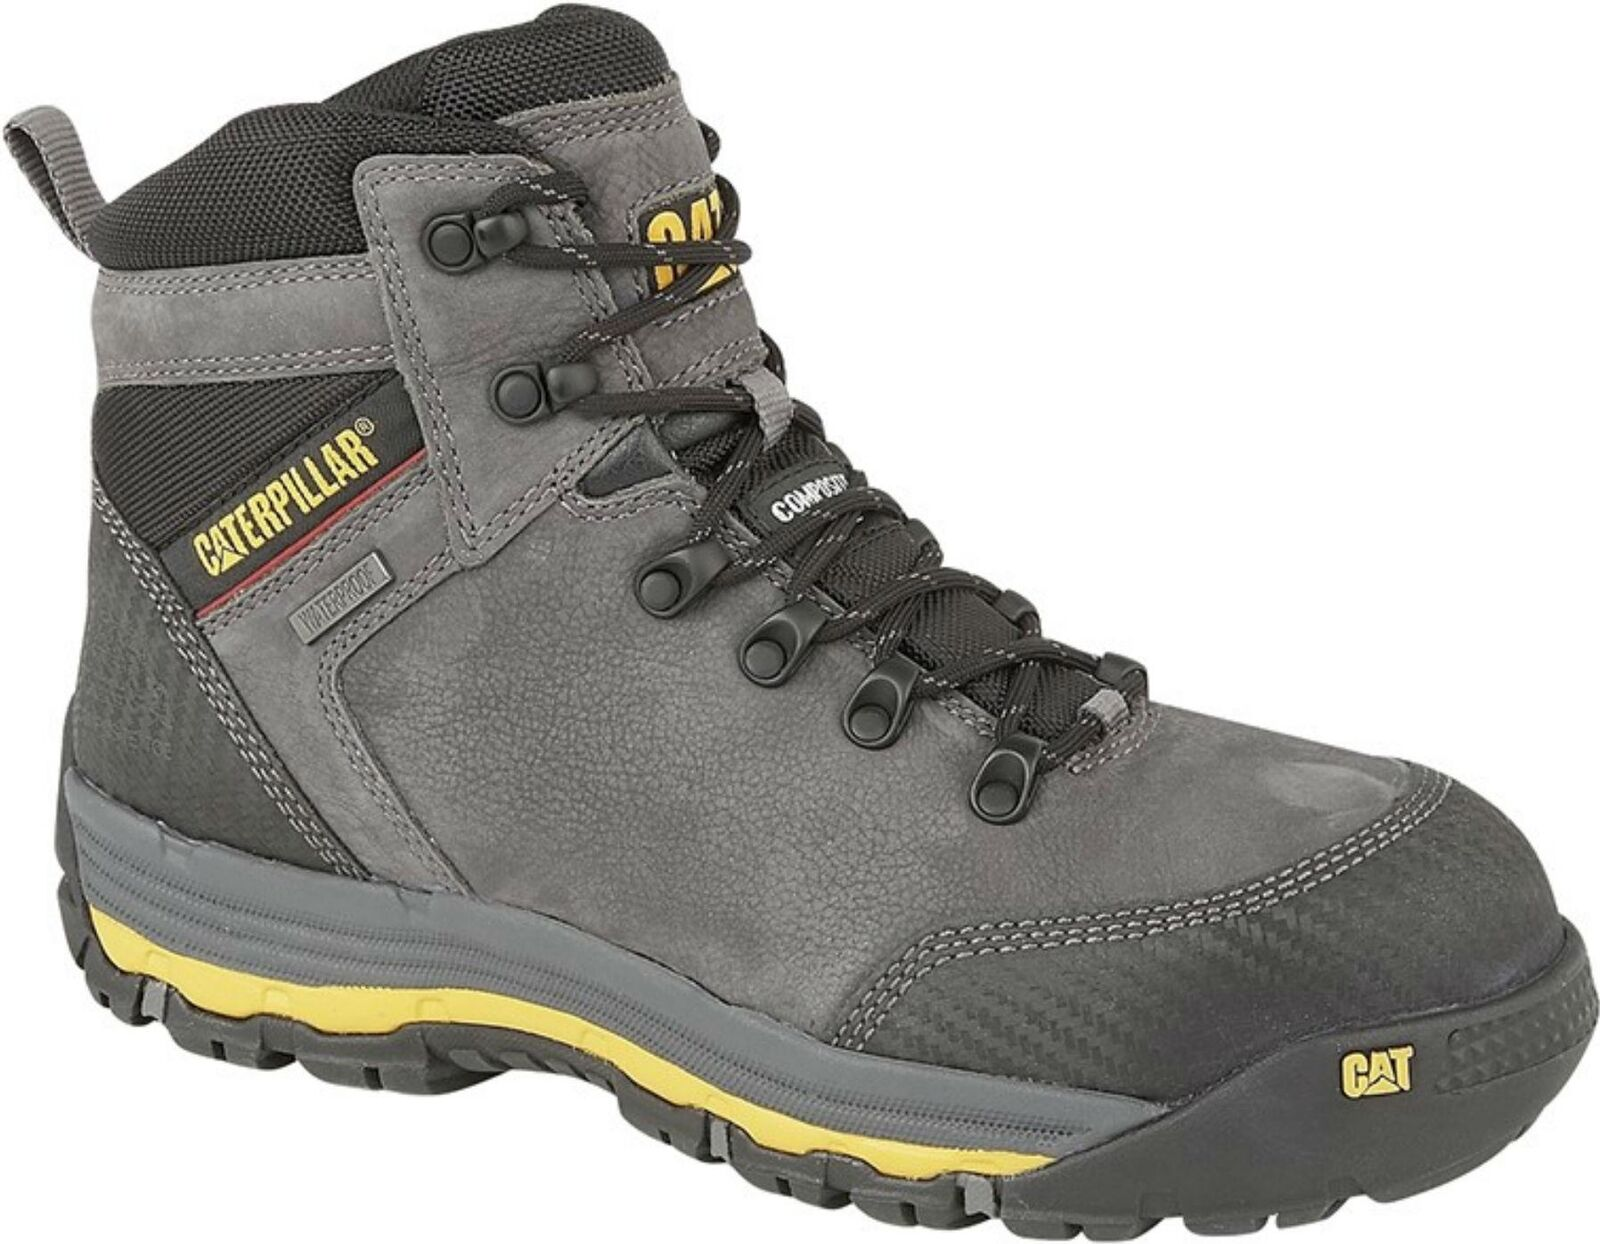 Cat ® MUNISING Mens Lace Up Waterproof Safety S3 SRC SRC SRC Ankle Work Boots Grey 0385e6